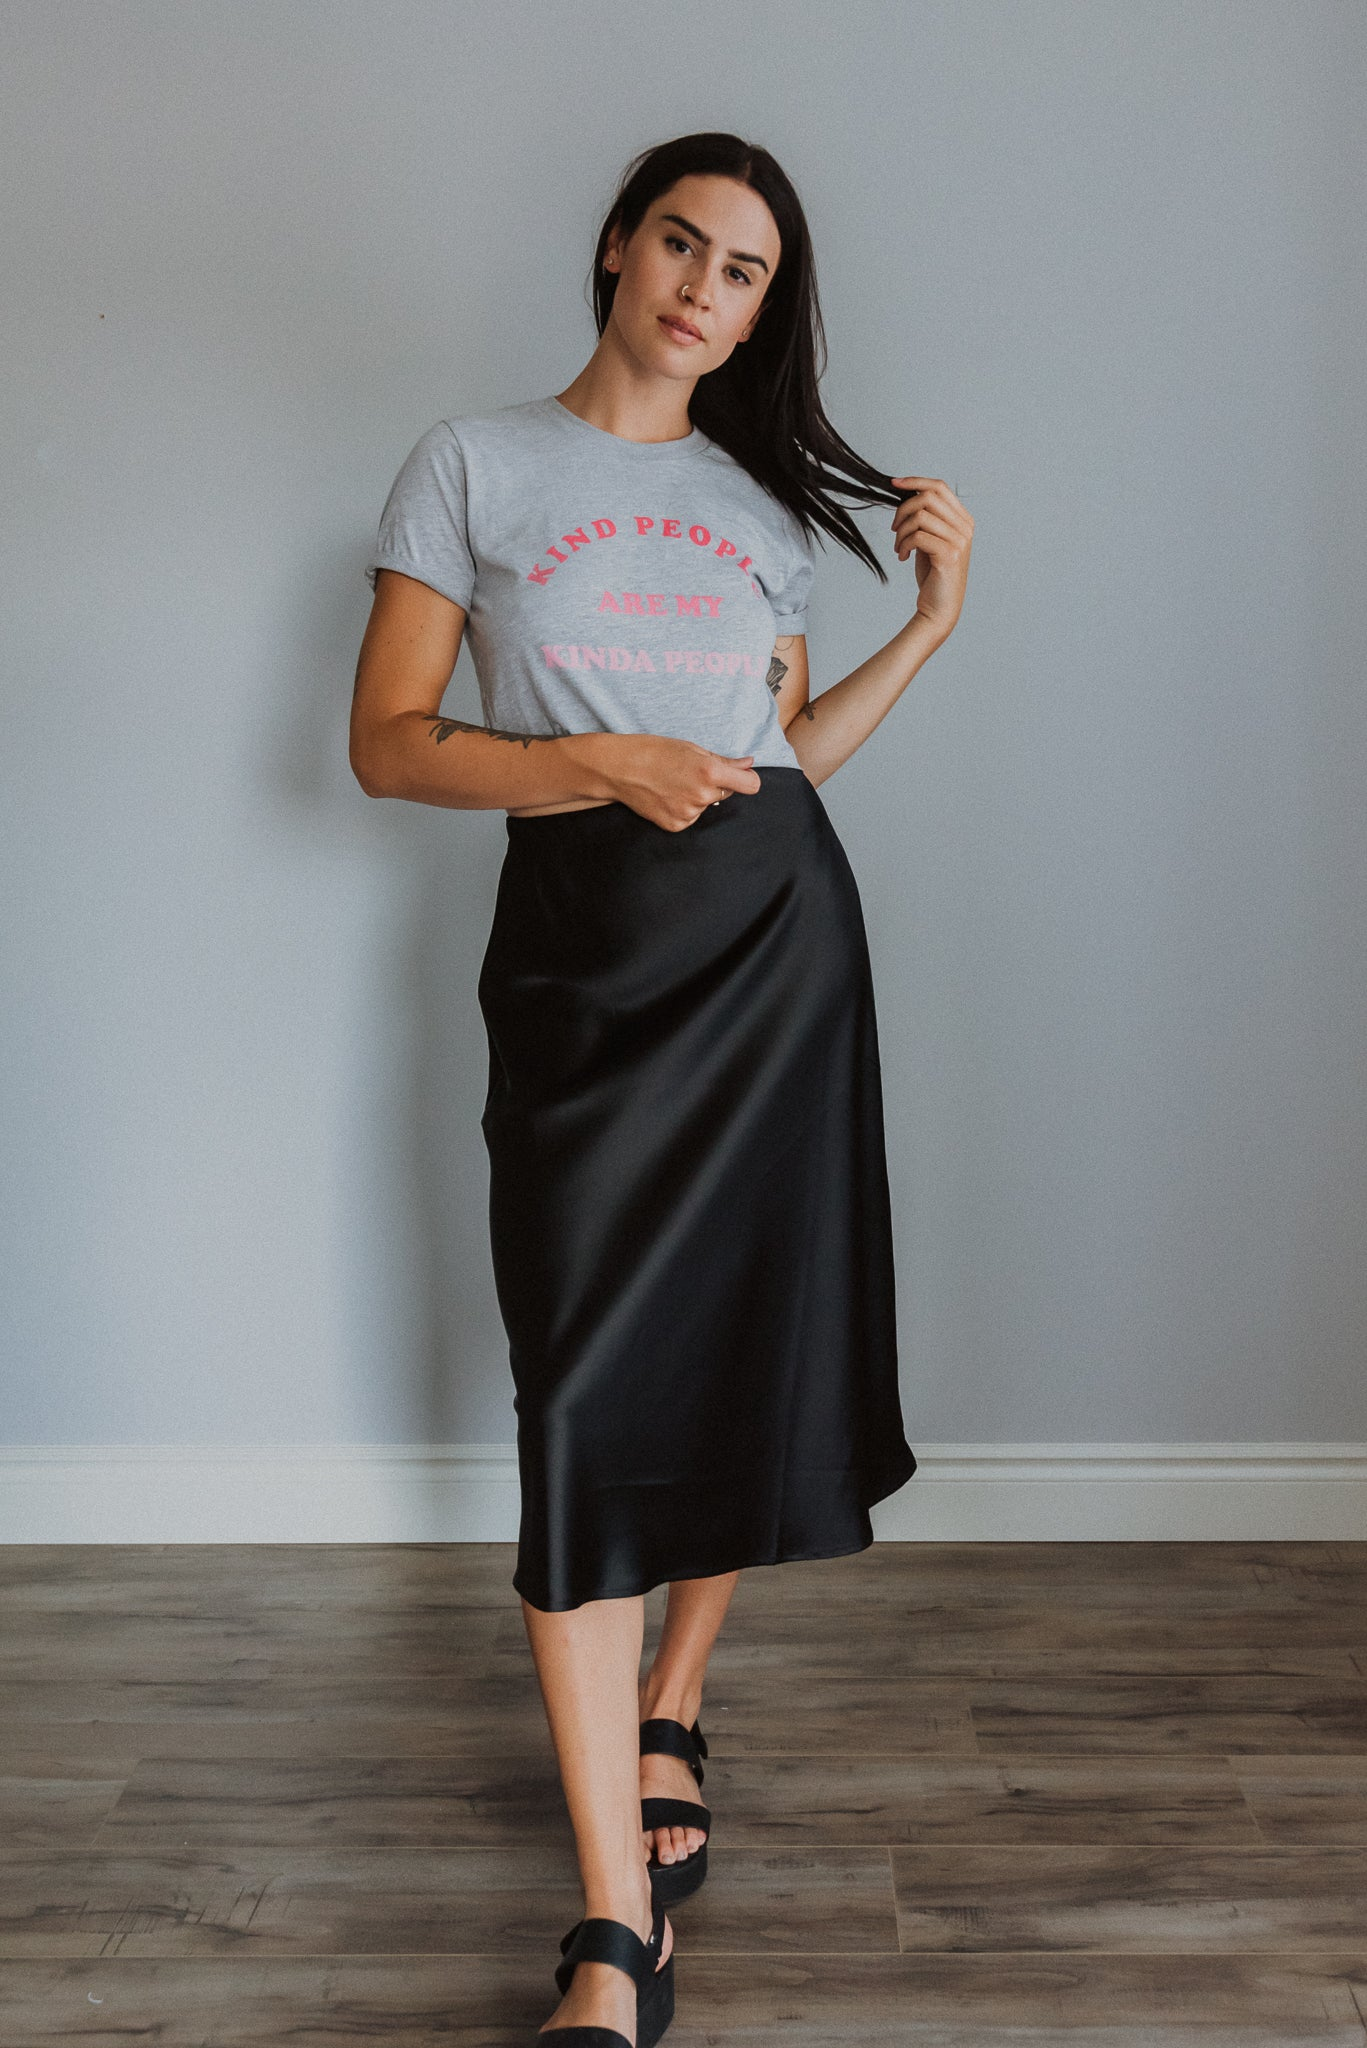 Kind People Are My Kinda People Crop Tee/ FINAL SALE